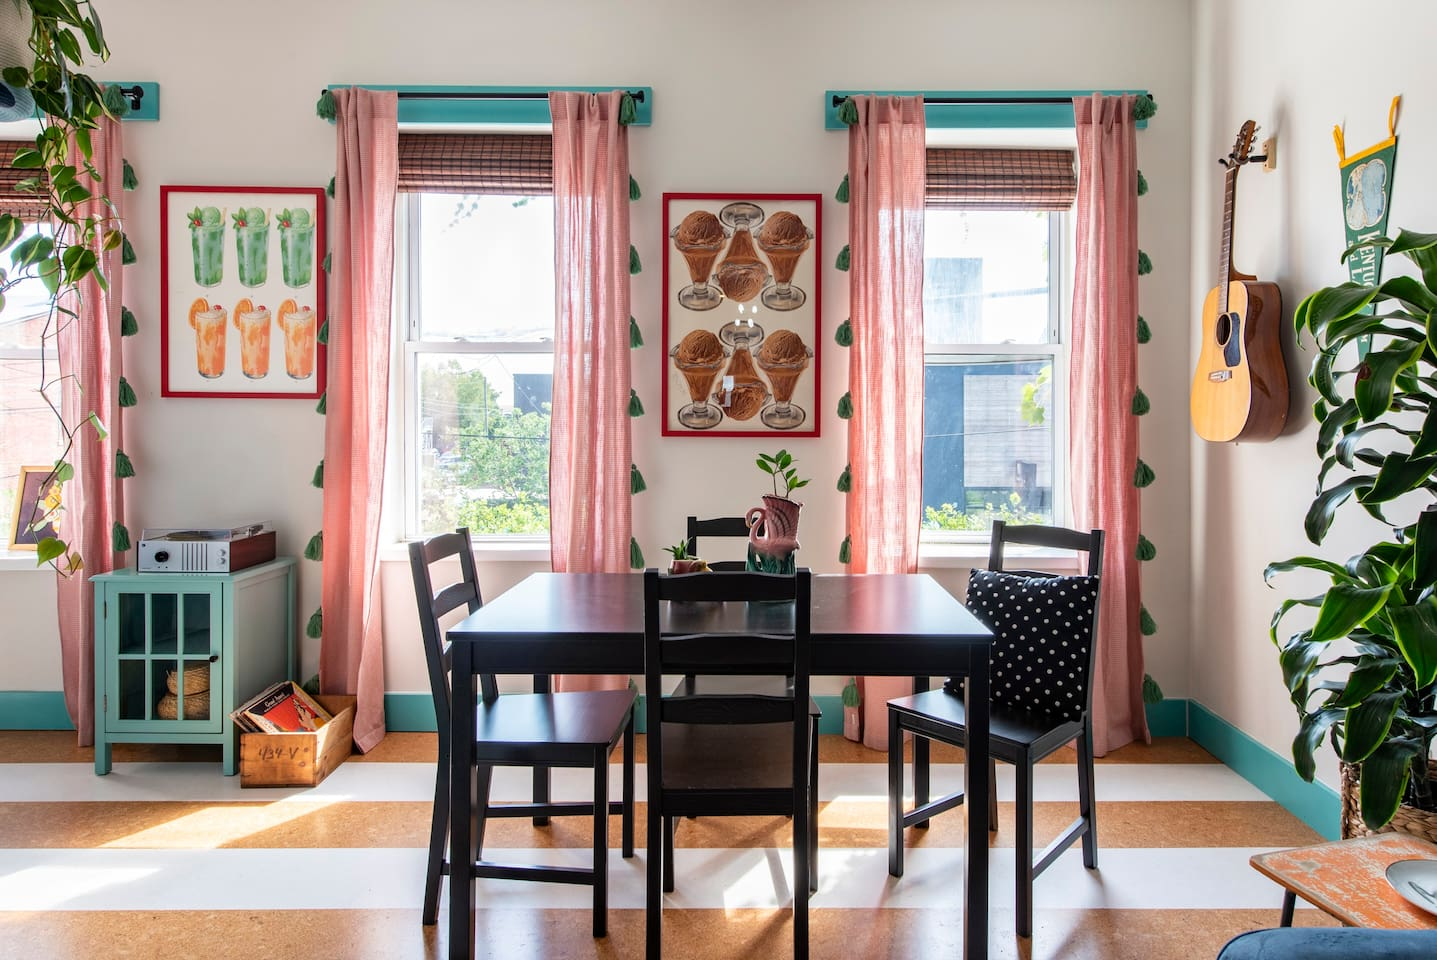 Full of light and color, this second floor bungalow is cozy and inviting.